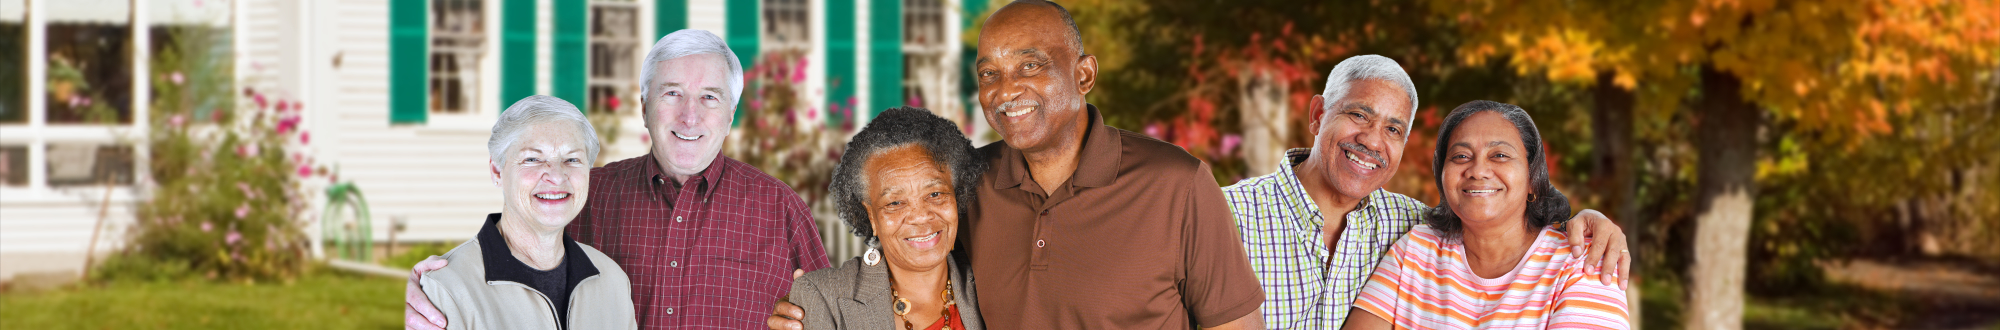 portrait of a happy old couples